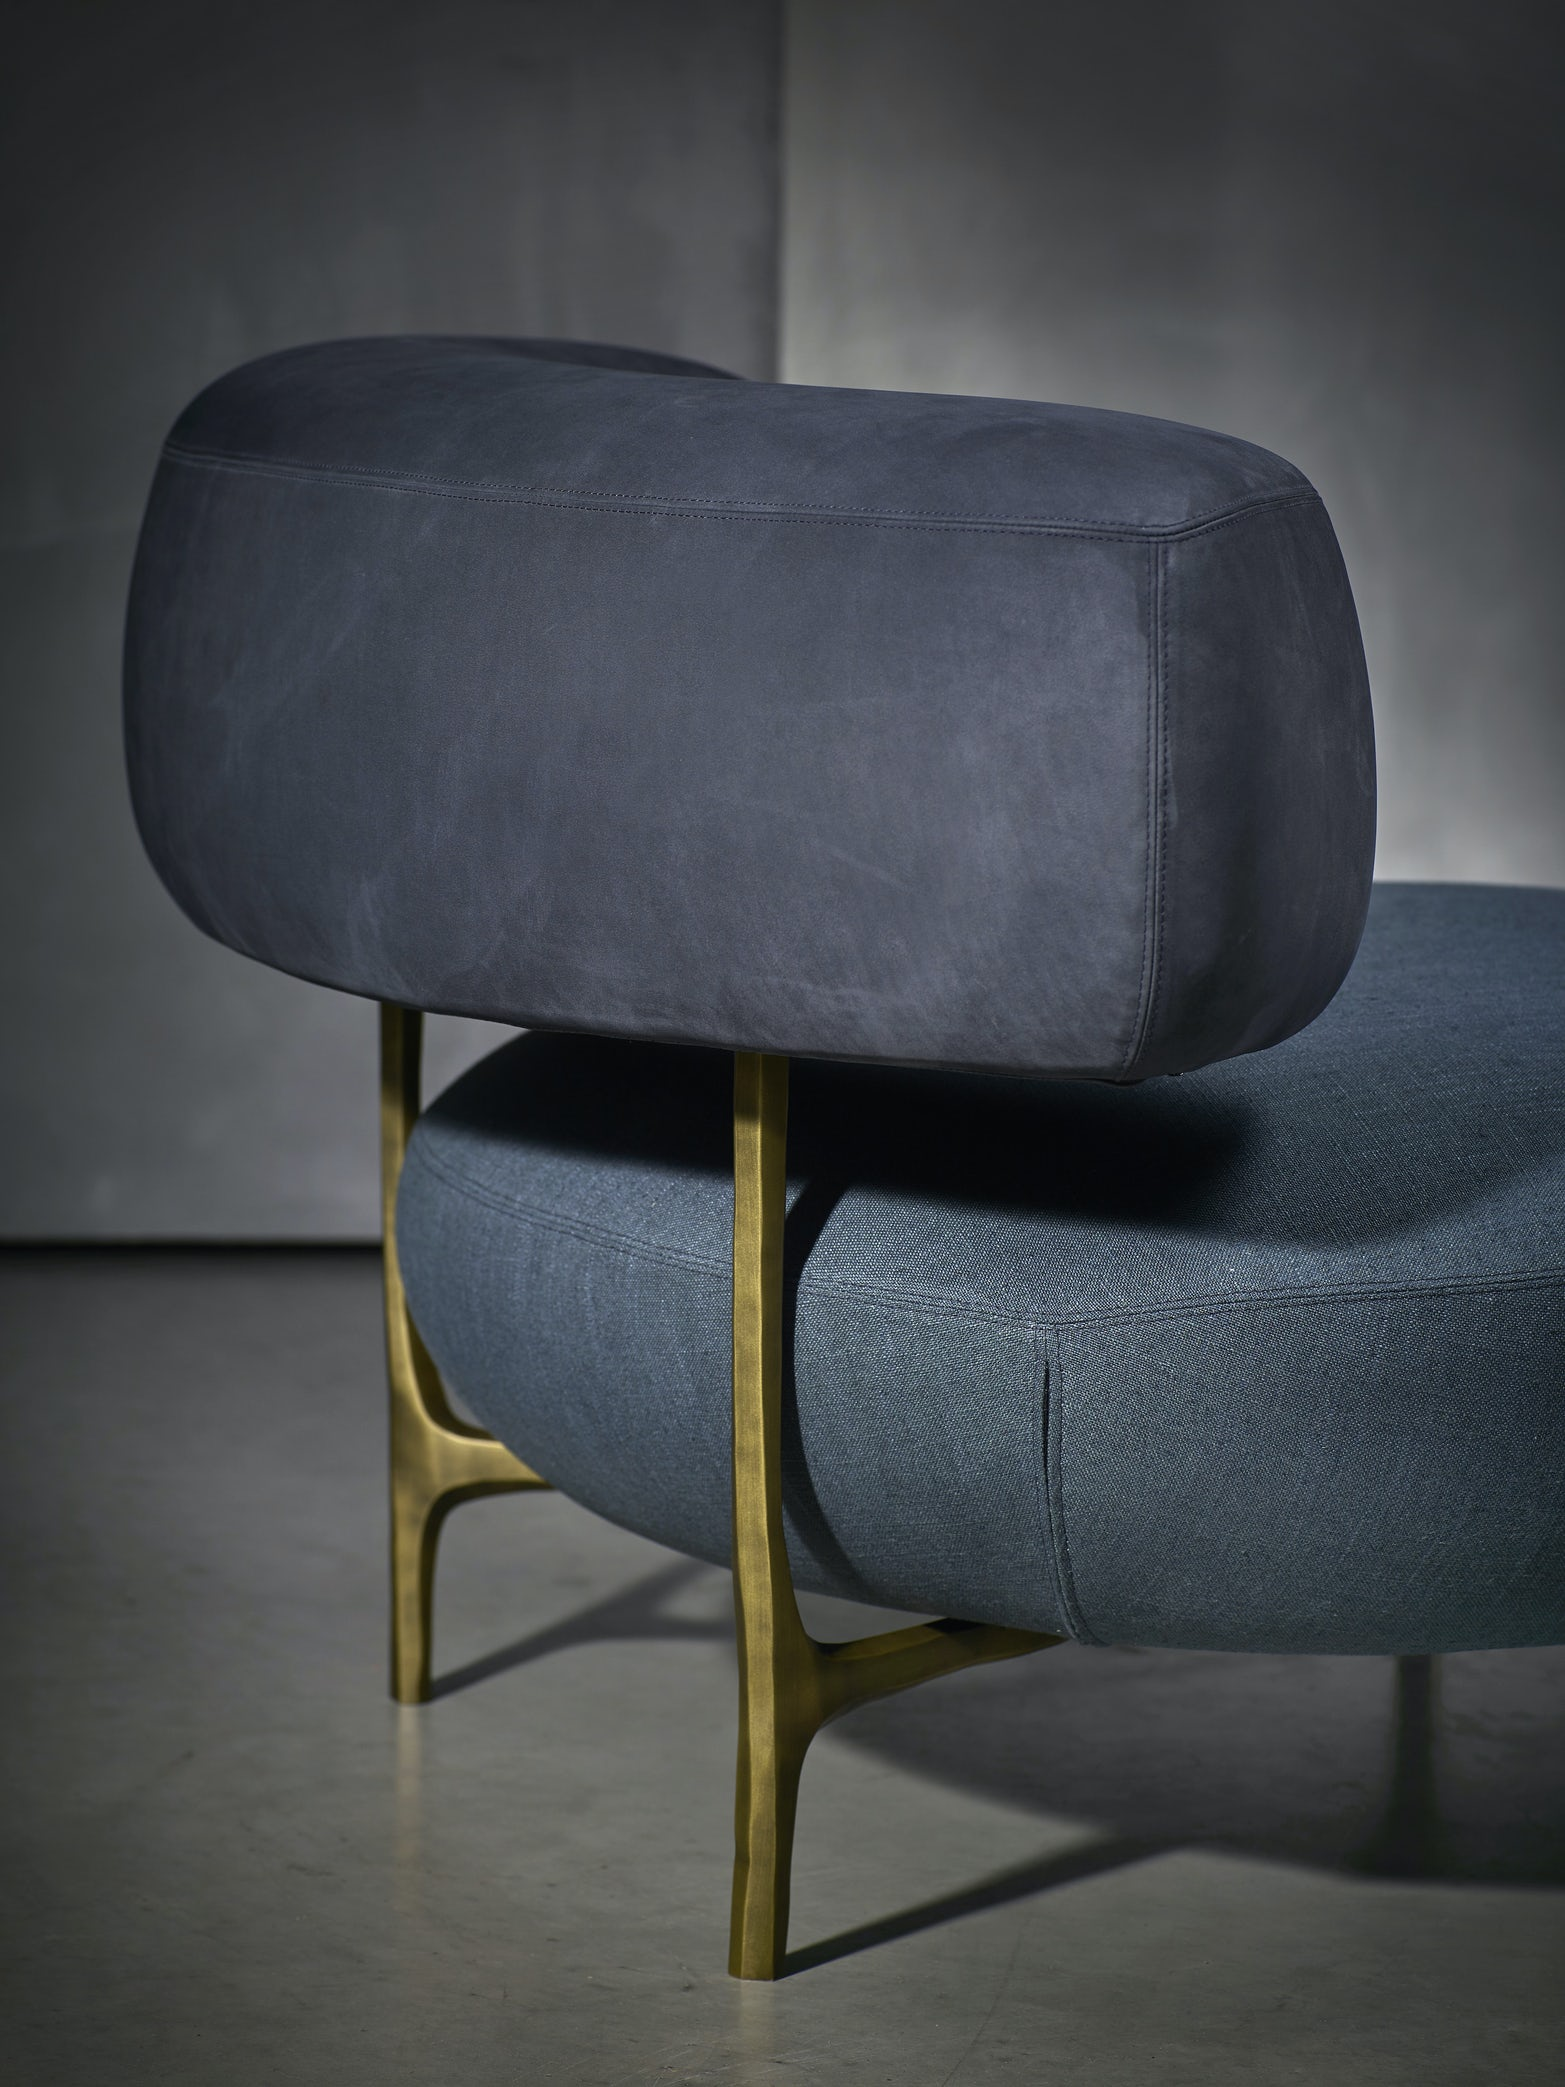 Ella-arm-chair-Piet-Boon-1